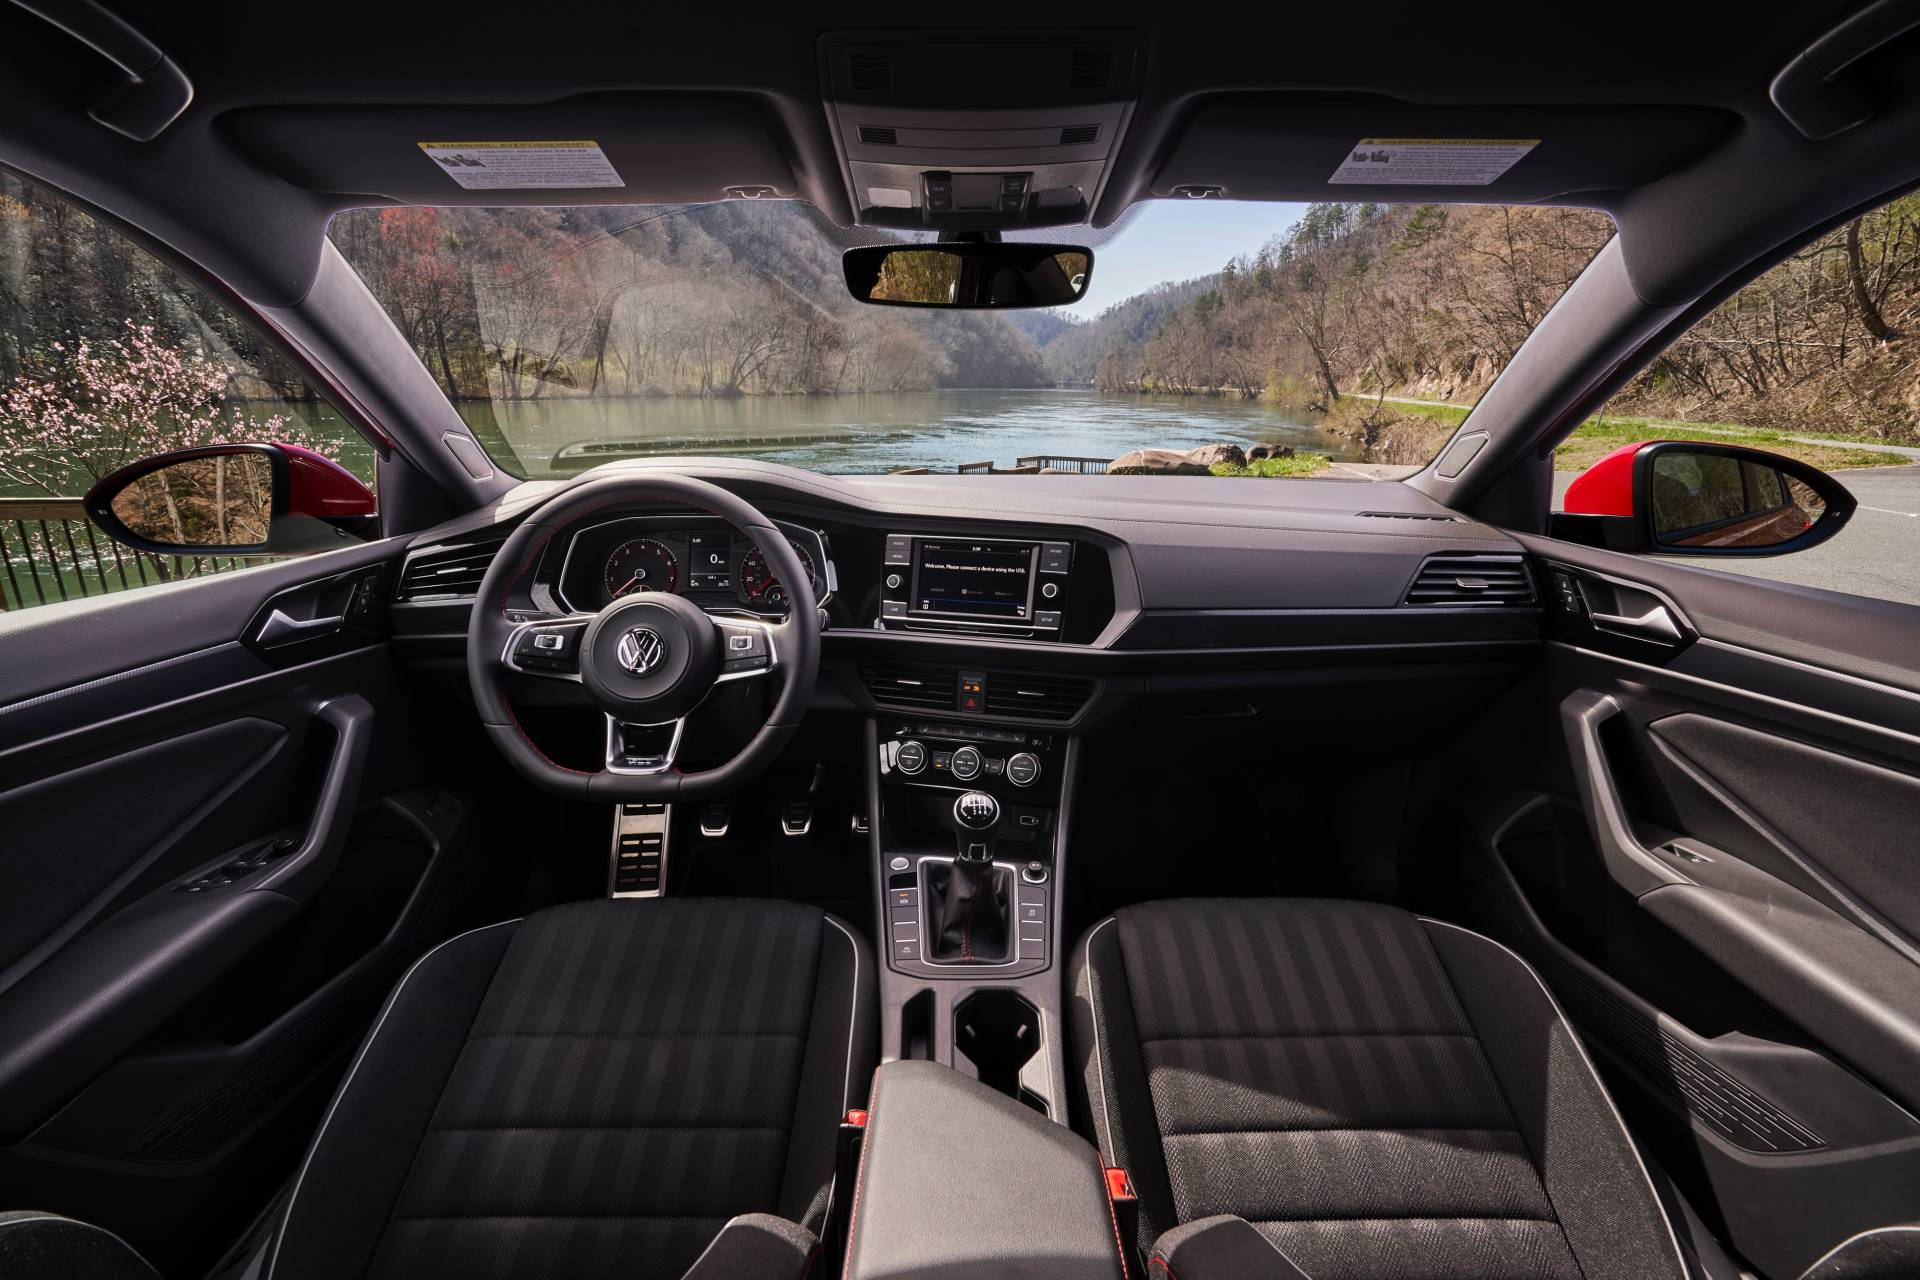 2019 Droped Jetta Wallpapers: Get To Know The 2019 VW Jetta GLI With Fresh Photos And